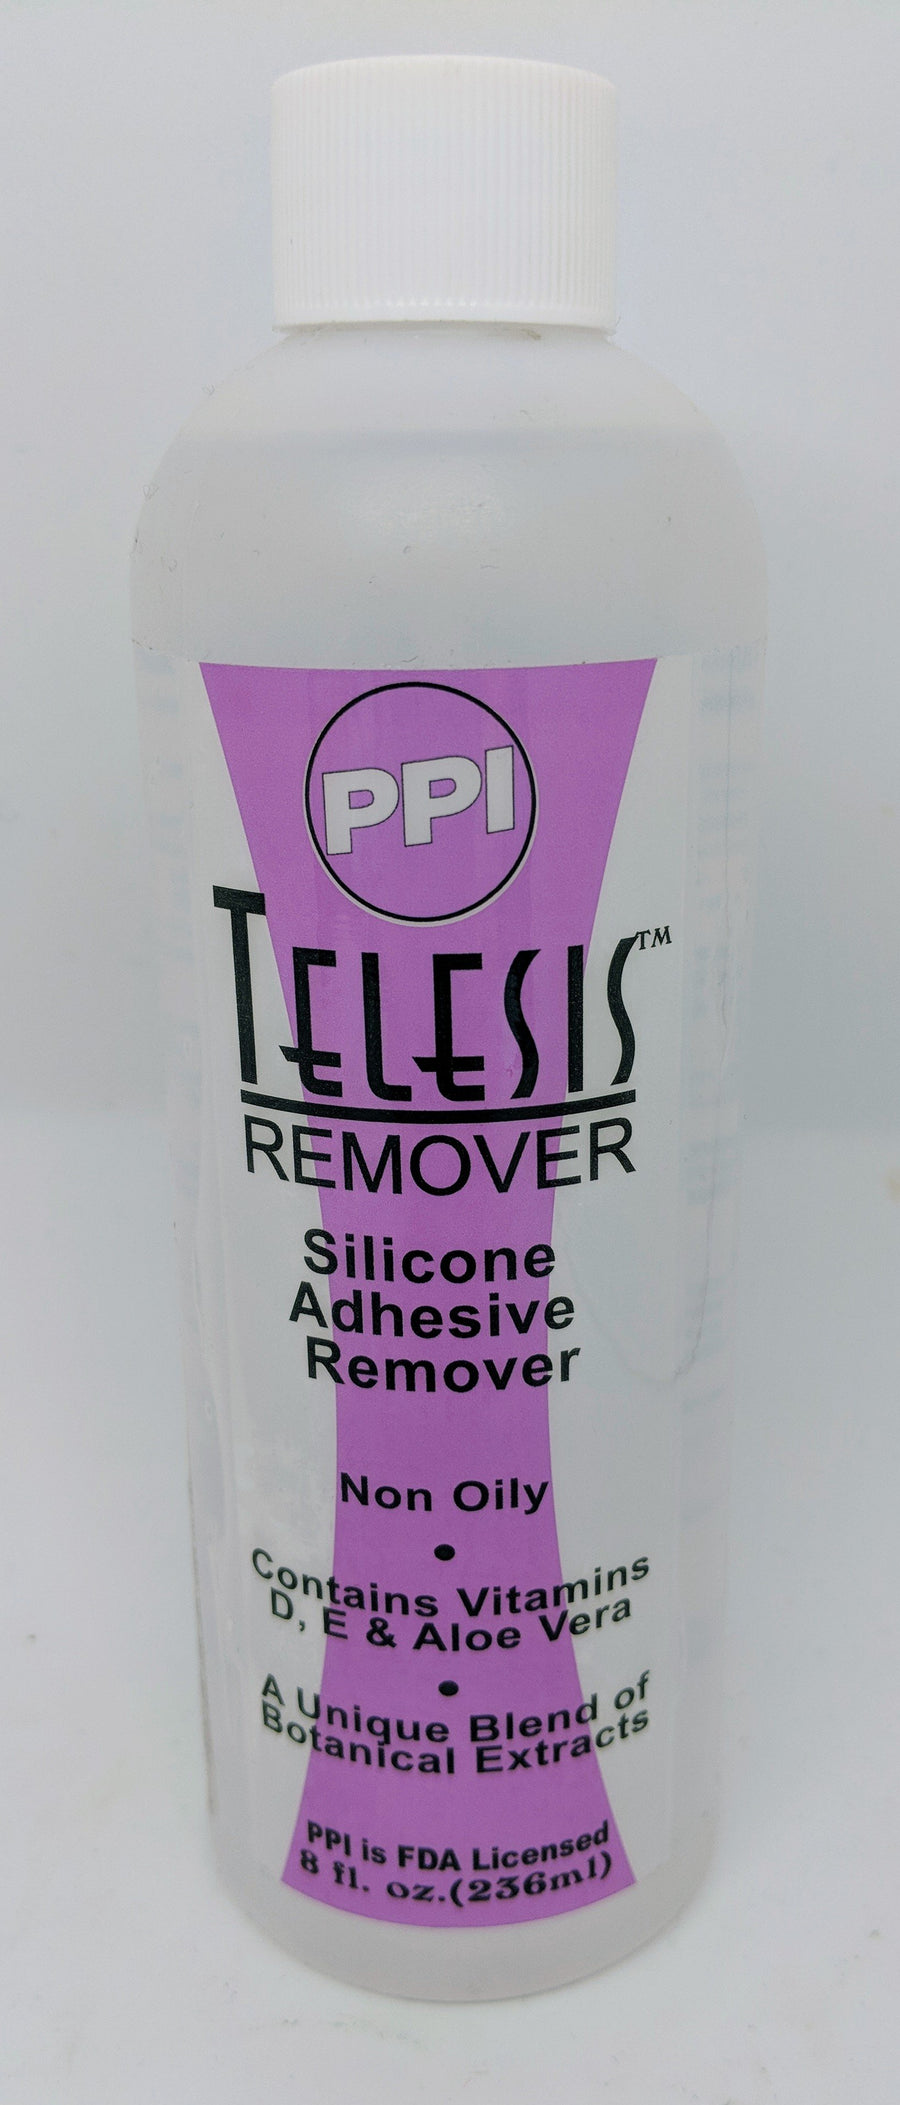 PPI Telesis Silicone Adhesive Remover - Precious About Make-up, (product_title),SFX, PPI